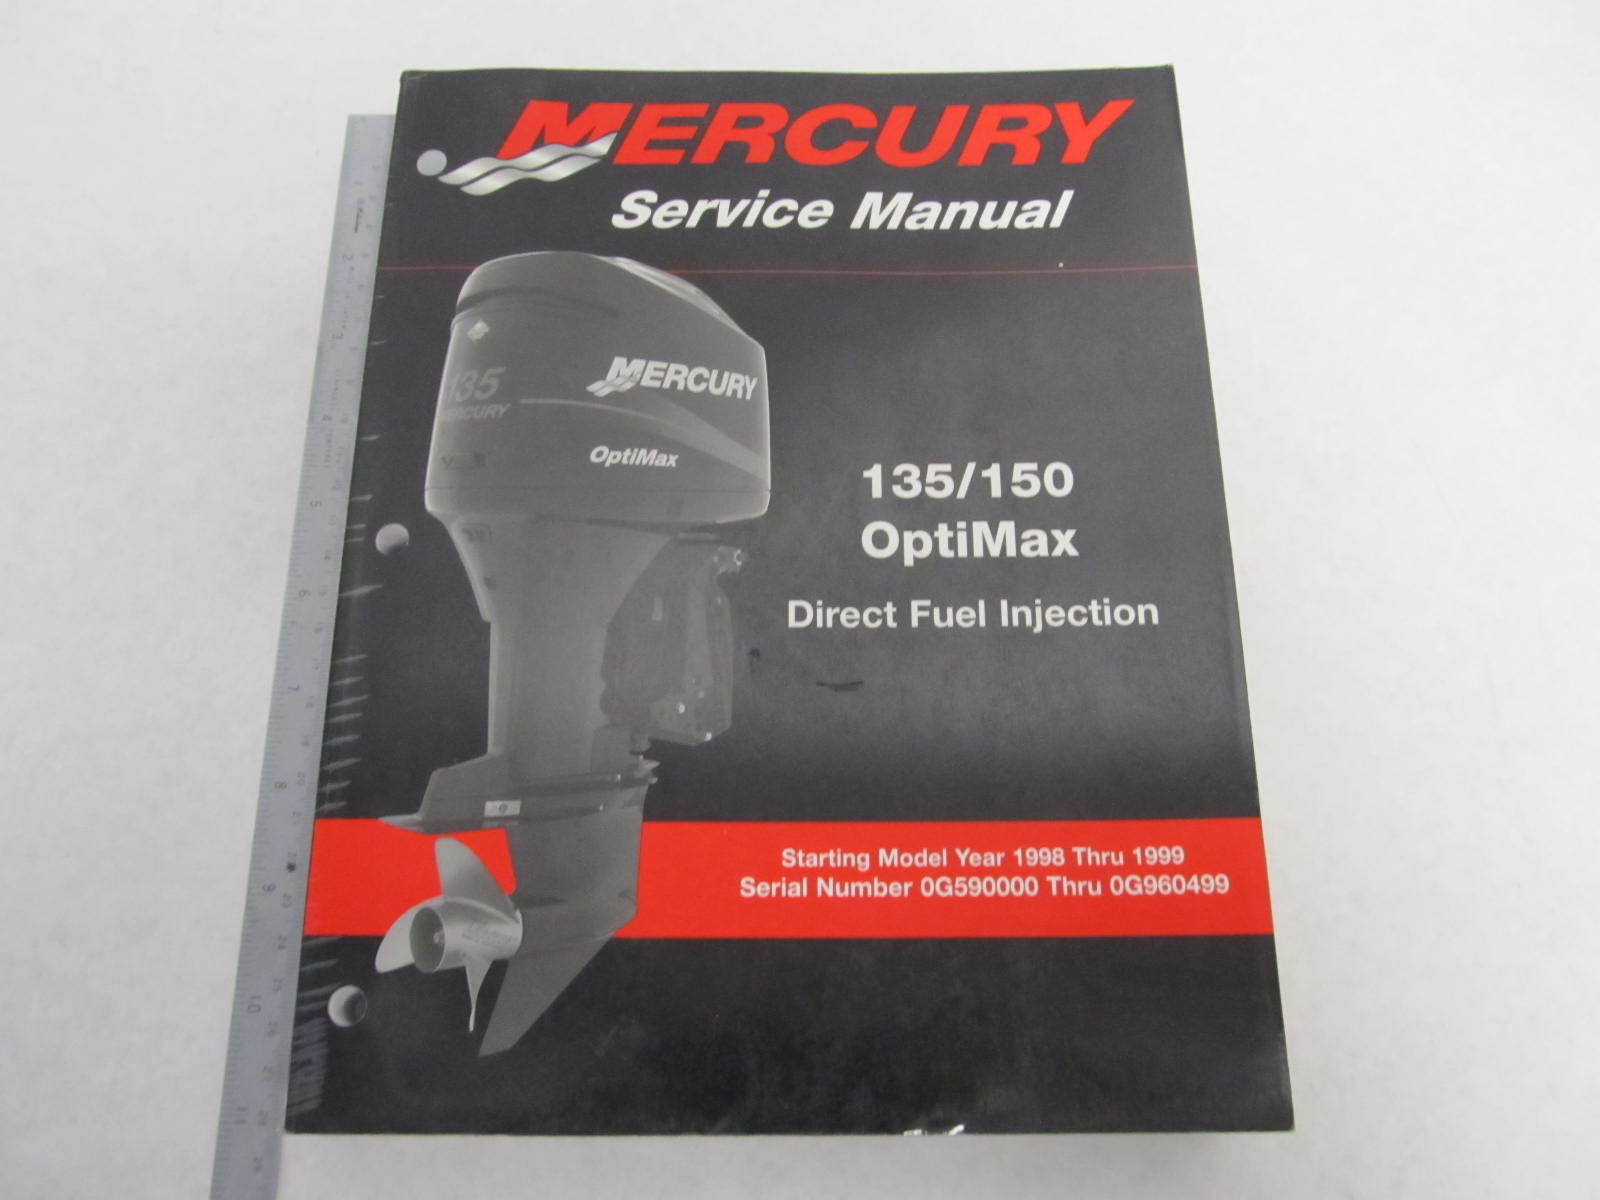 Oil Injection Components For Mariner Mercury 135 140 150 Manual Guide